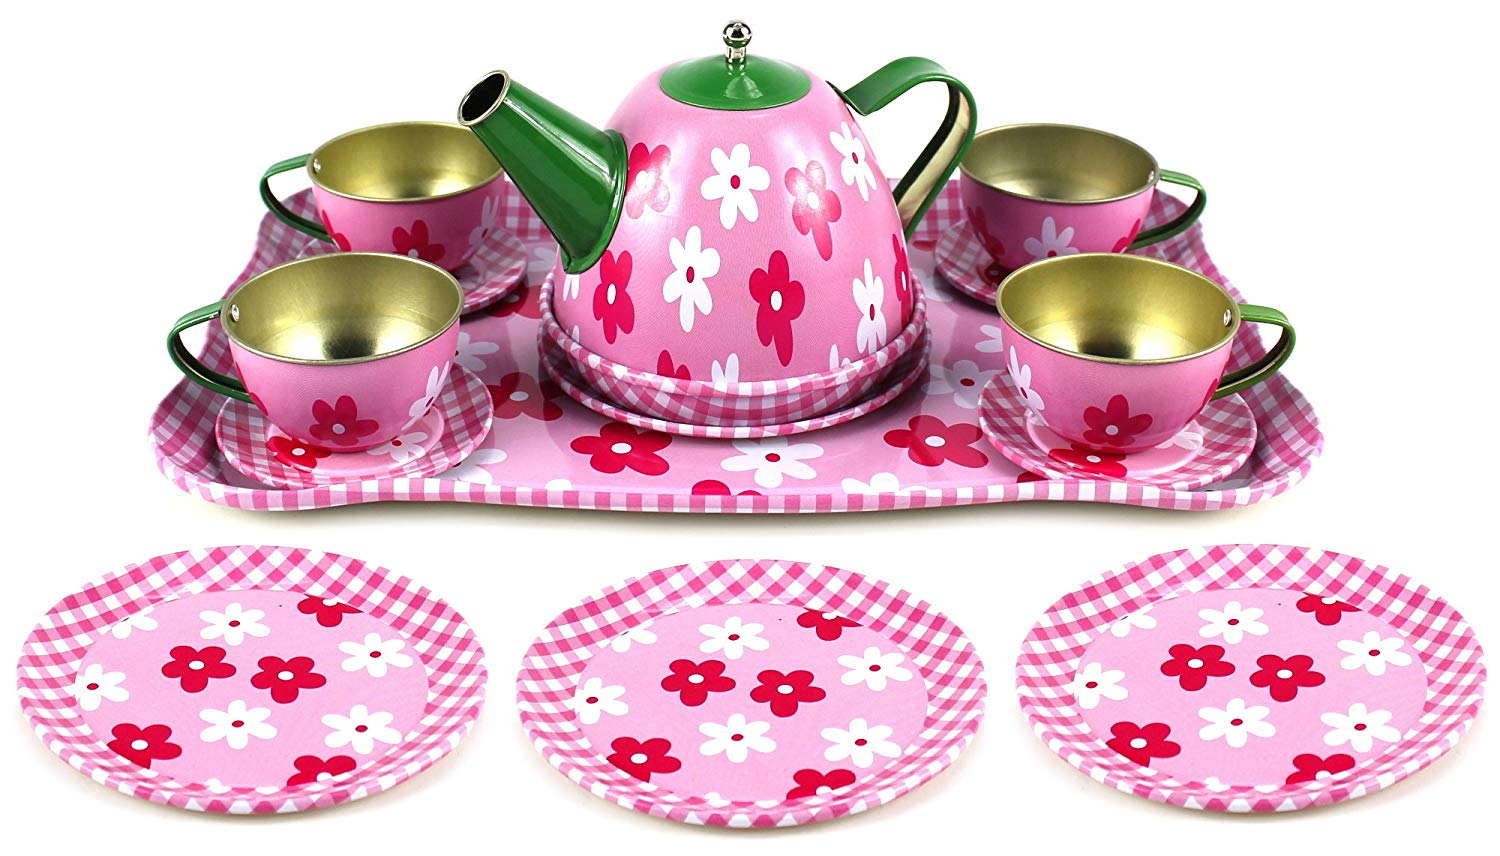 Tea Set Toy Flower Springtime Children S Kid S Full Metal Durable Pretend Play Toy Tea Set W Cups Tea Pot Plates Tray Styles May Vary